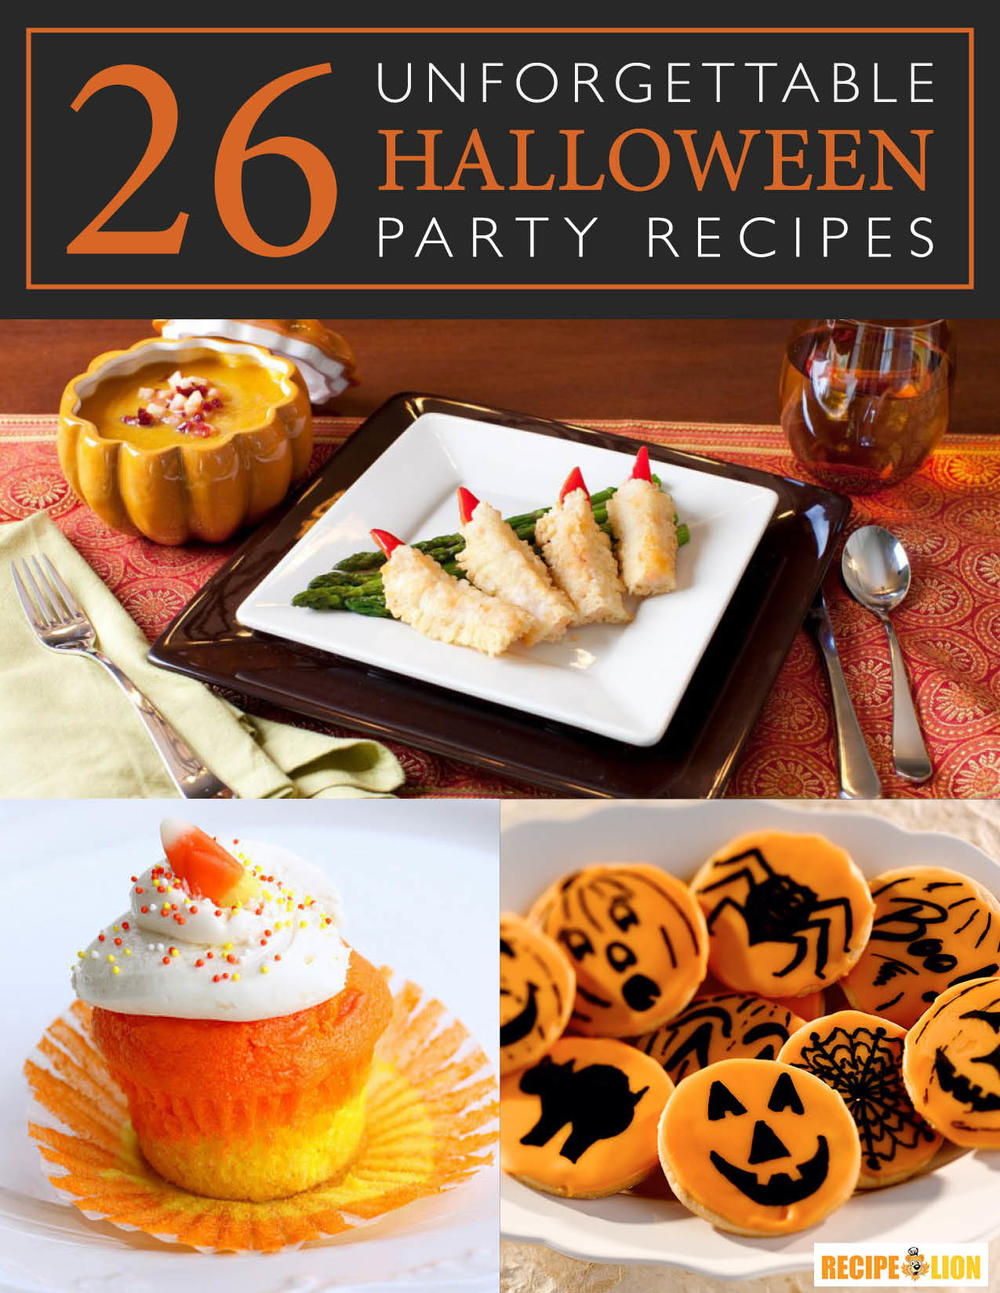 26 Unforgettable Halloween Party Recipes Free Ecookbook Recipelion Com